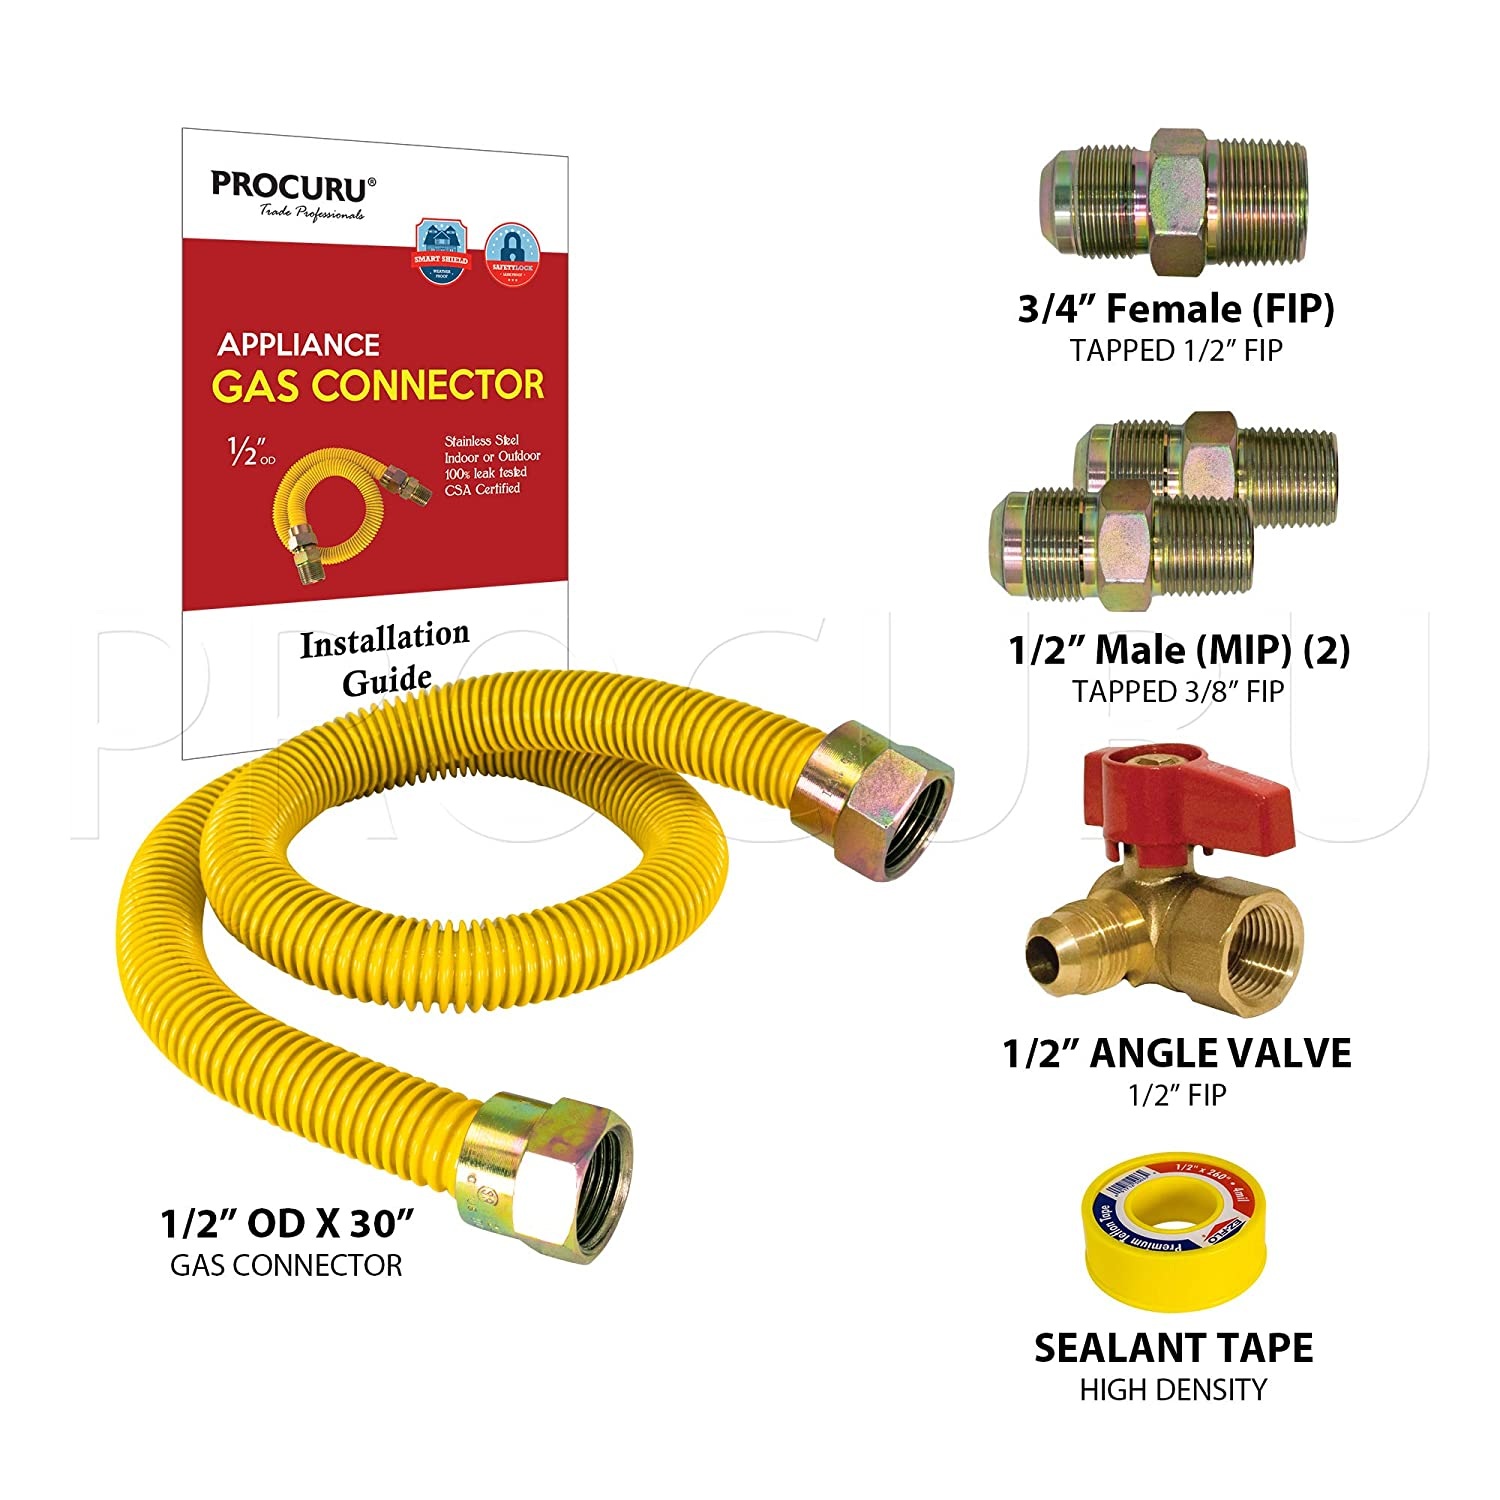 Water Heater WeatherProof Flexible Stainless Steel Tubing with SafeGuard Coating for Dryer PROCURU 72 x 1//2 OD Gas Flex Line Connector Kit with 1//2 Angle Valve